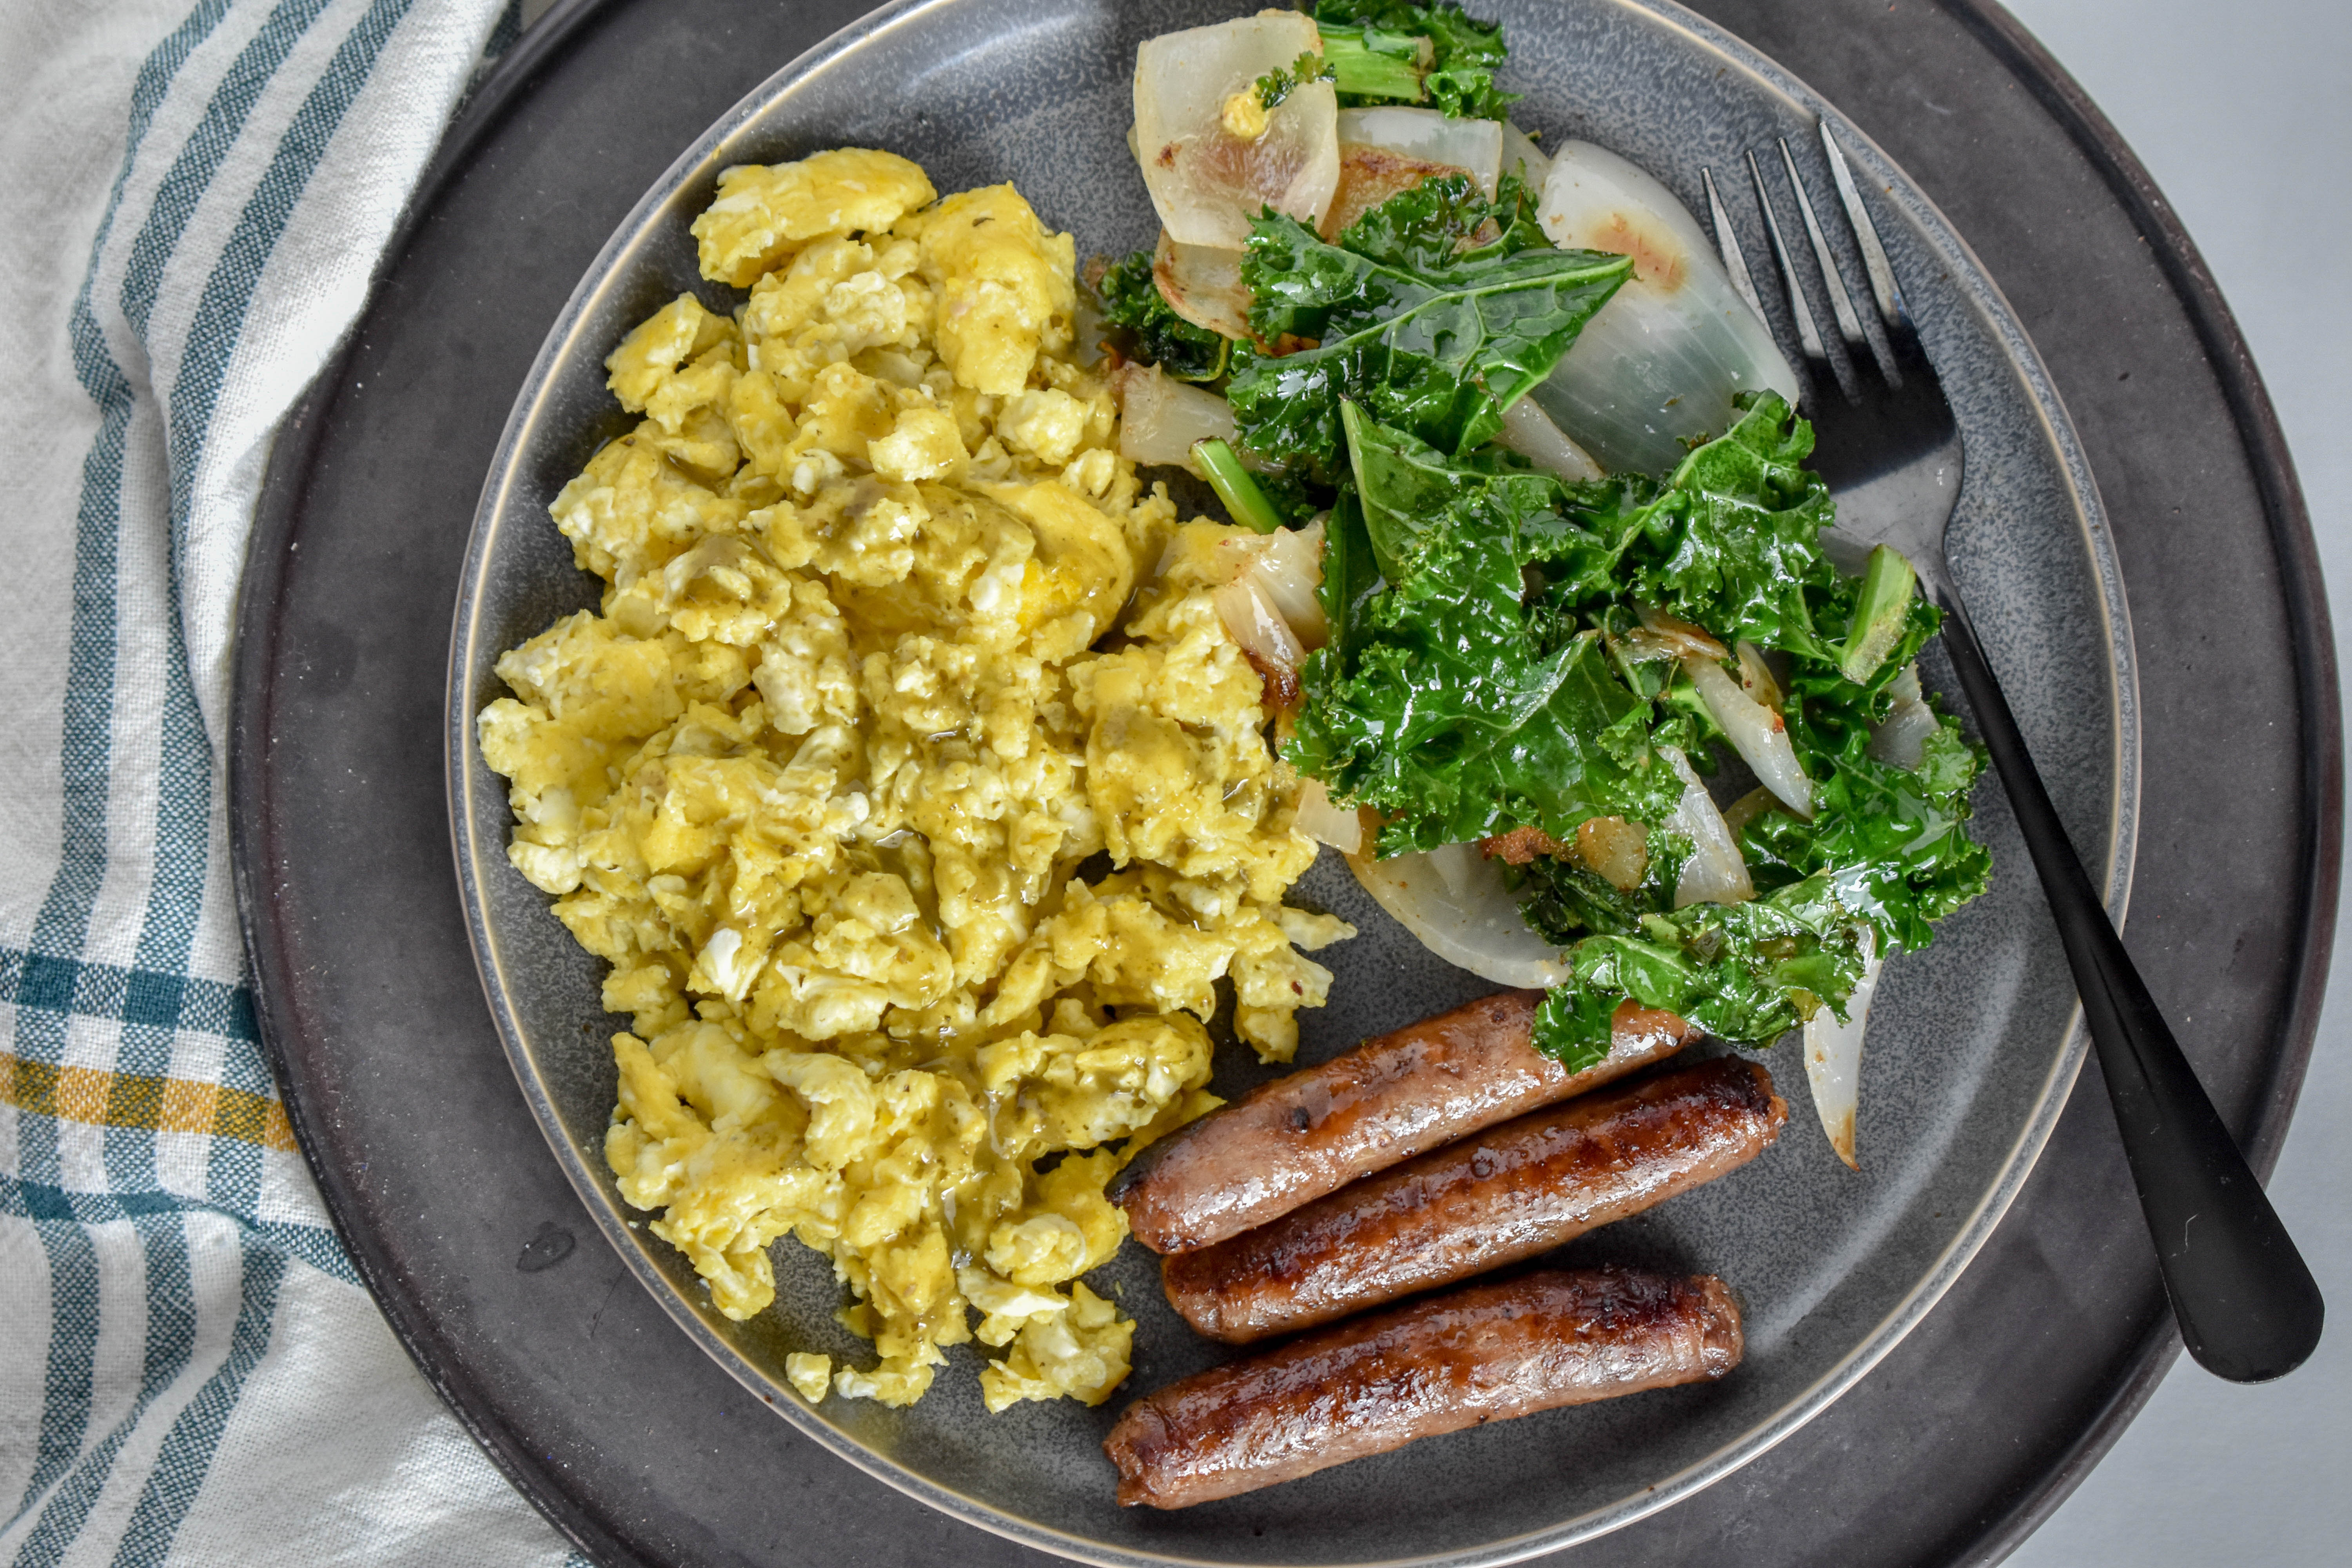 Clean Eating Breakfast with scrambled eggs, sausage links and sauteed kale and onions on a grey plate.